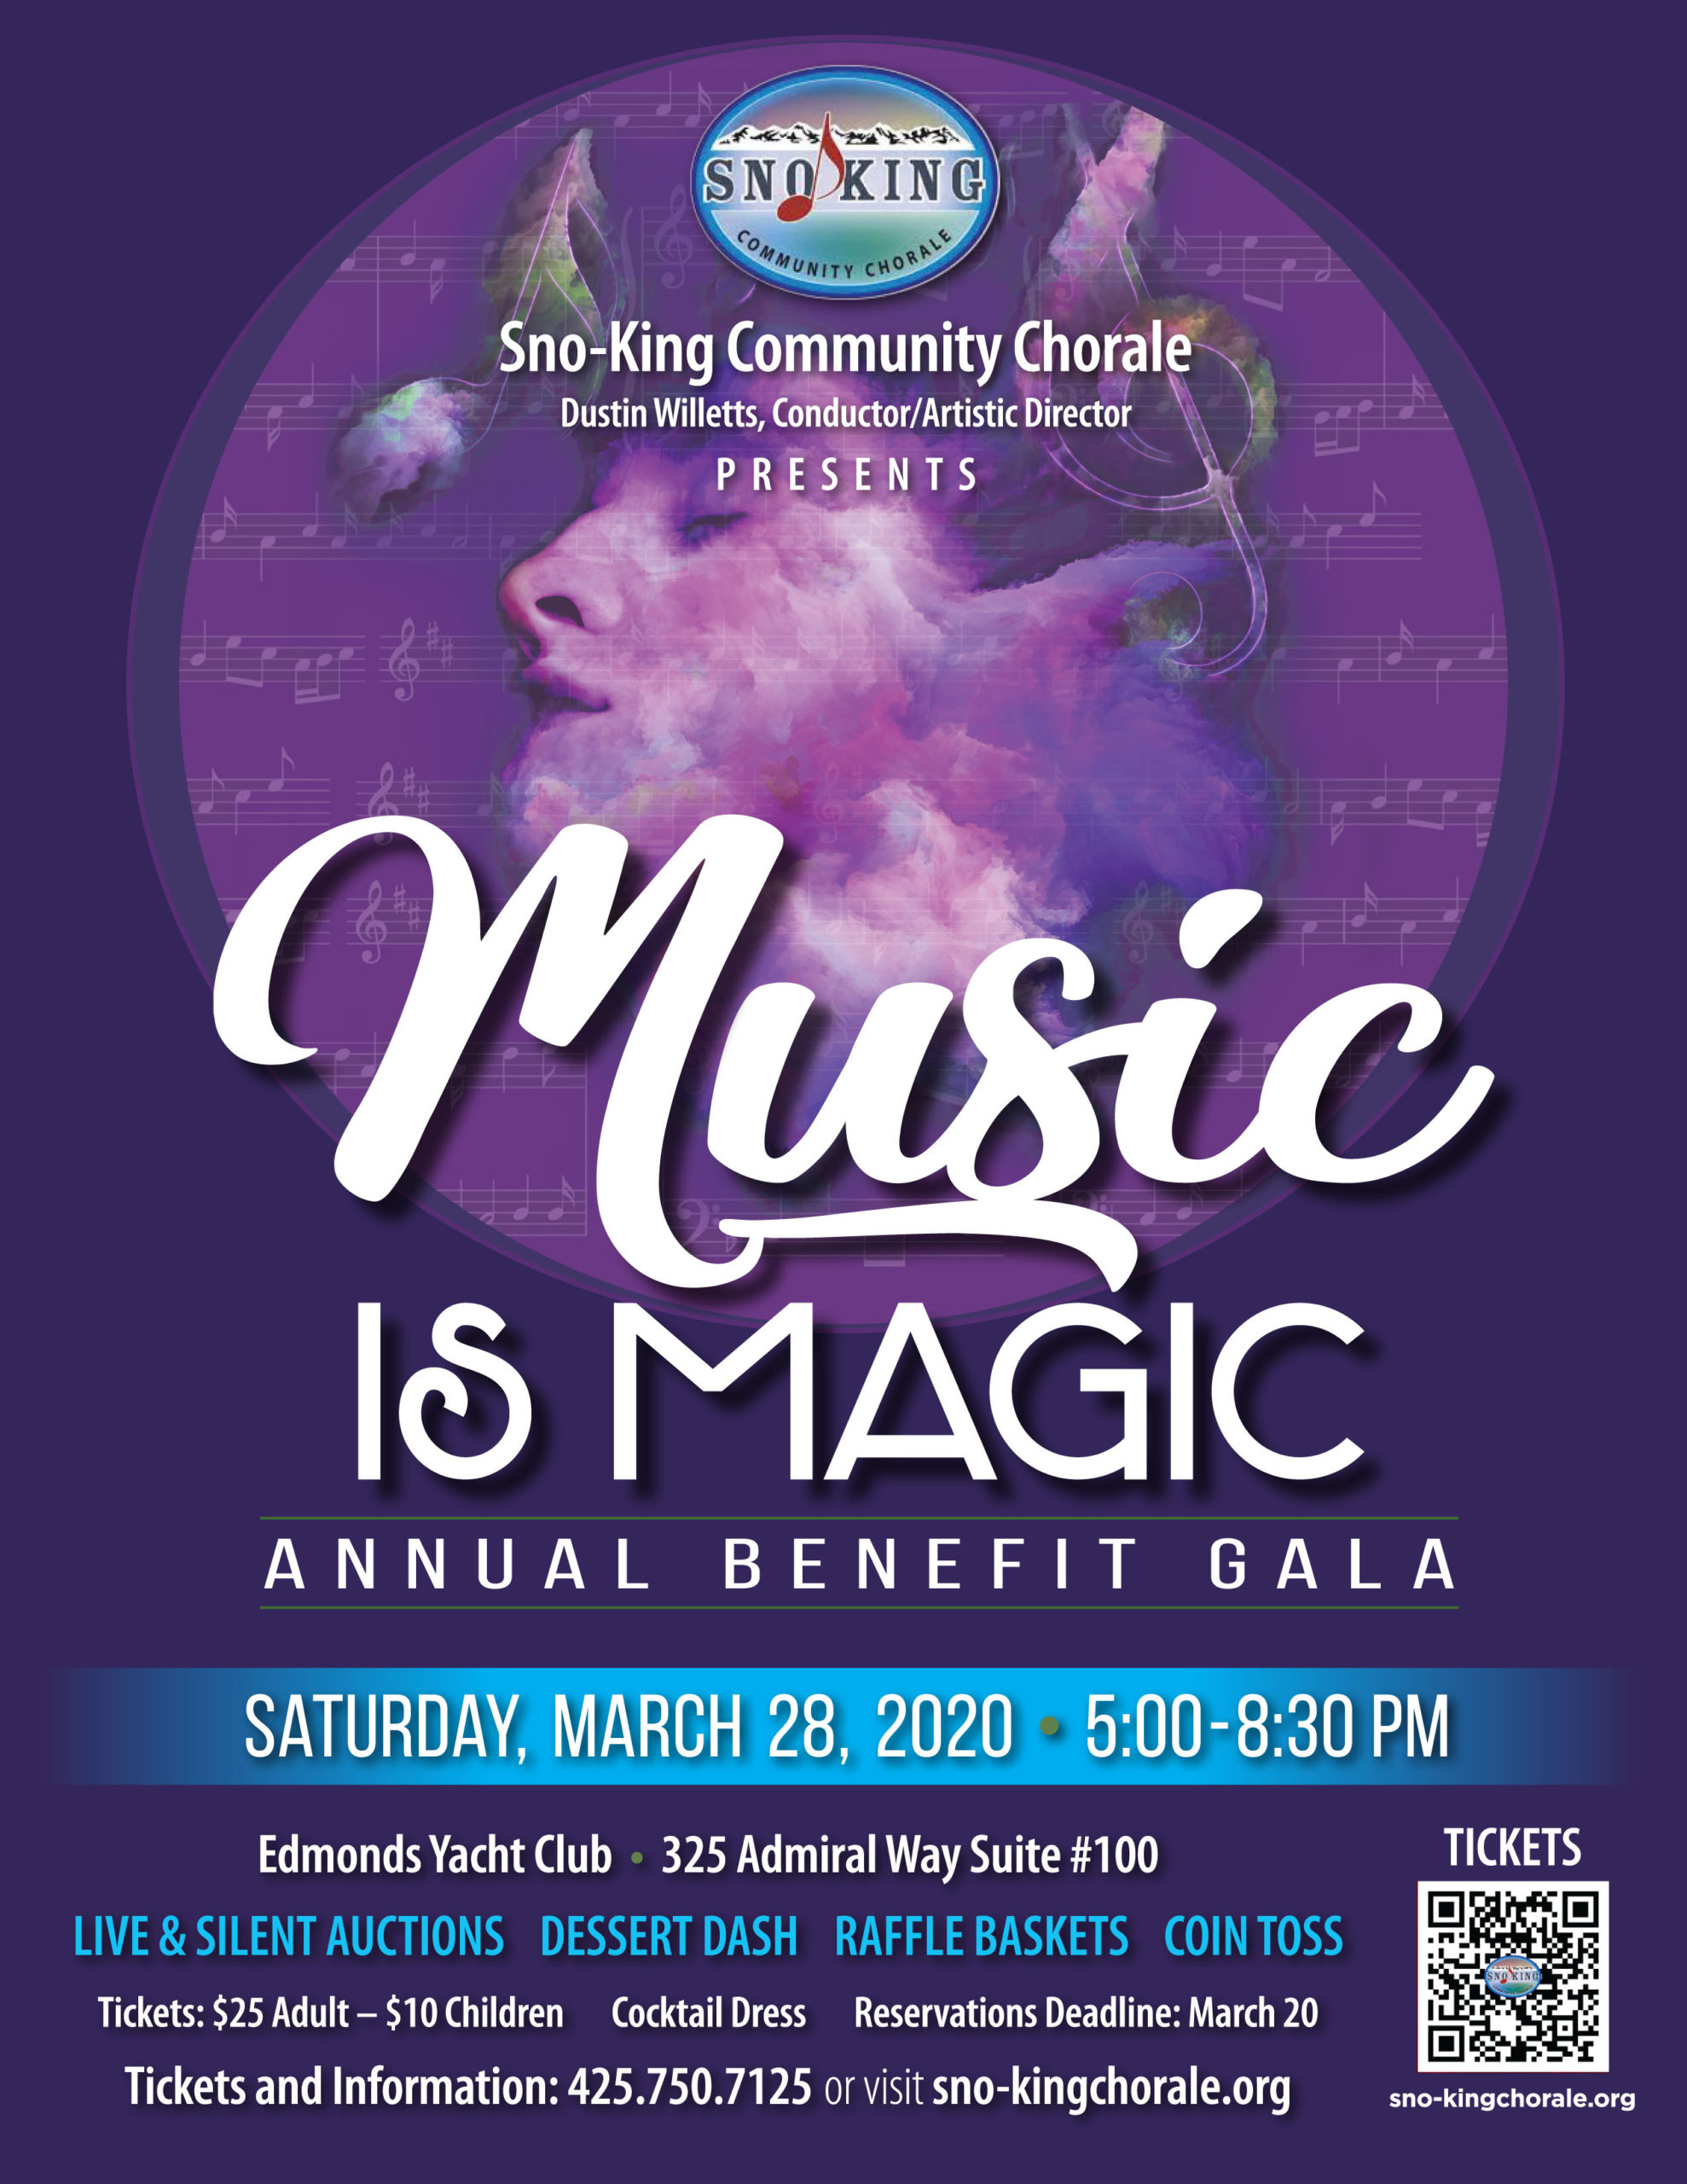 Sno-King Chorale MusicIsMagic poster_FINAL.indd